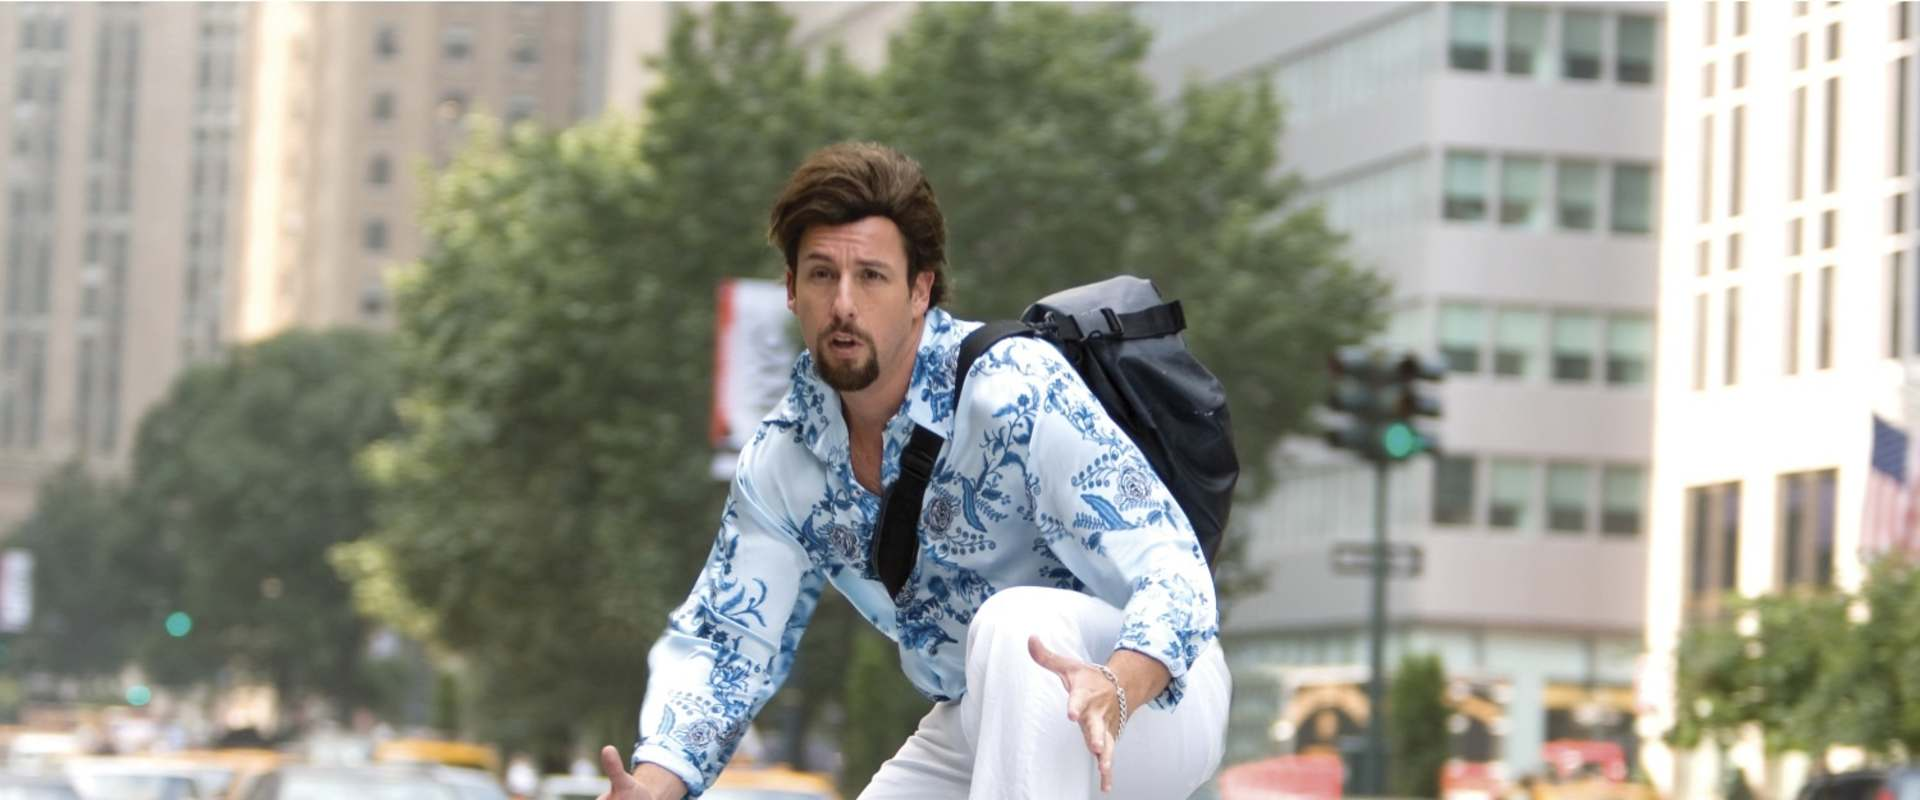 You Don't Mess with the Zohan background 1